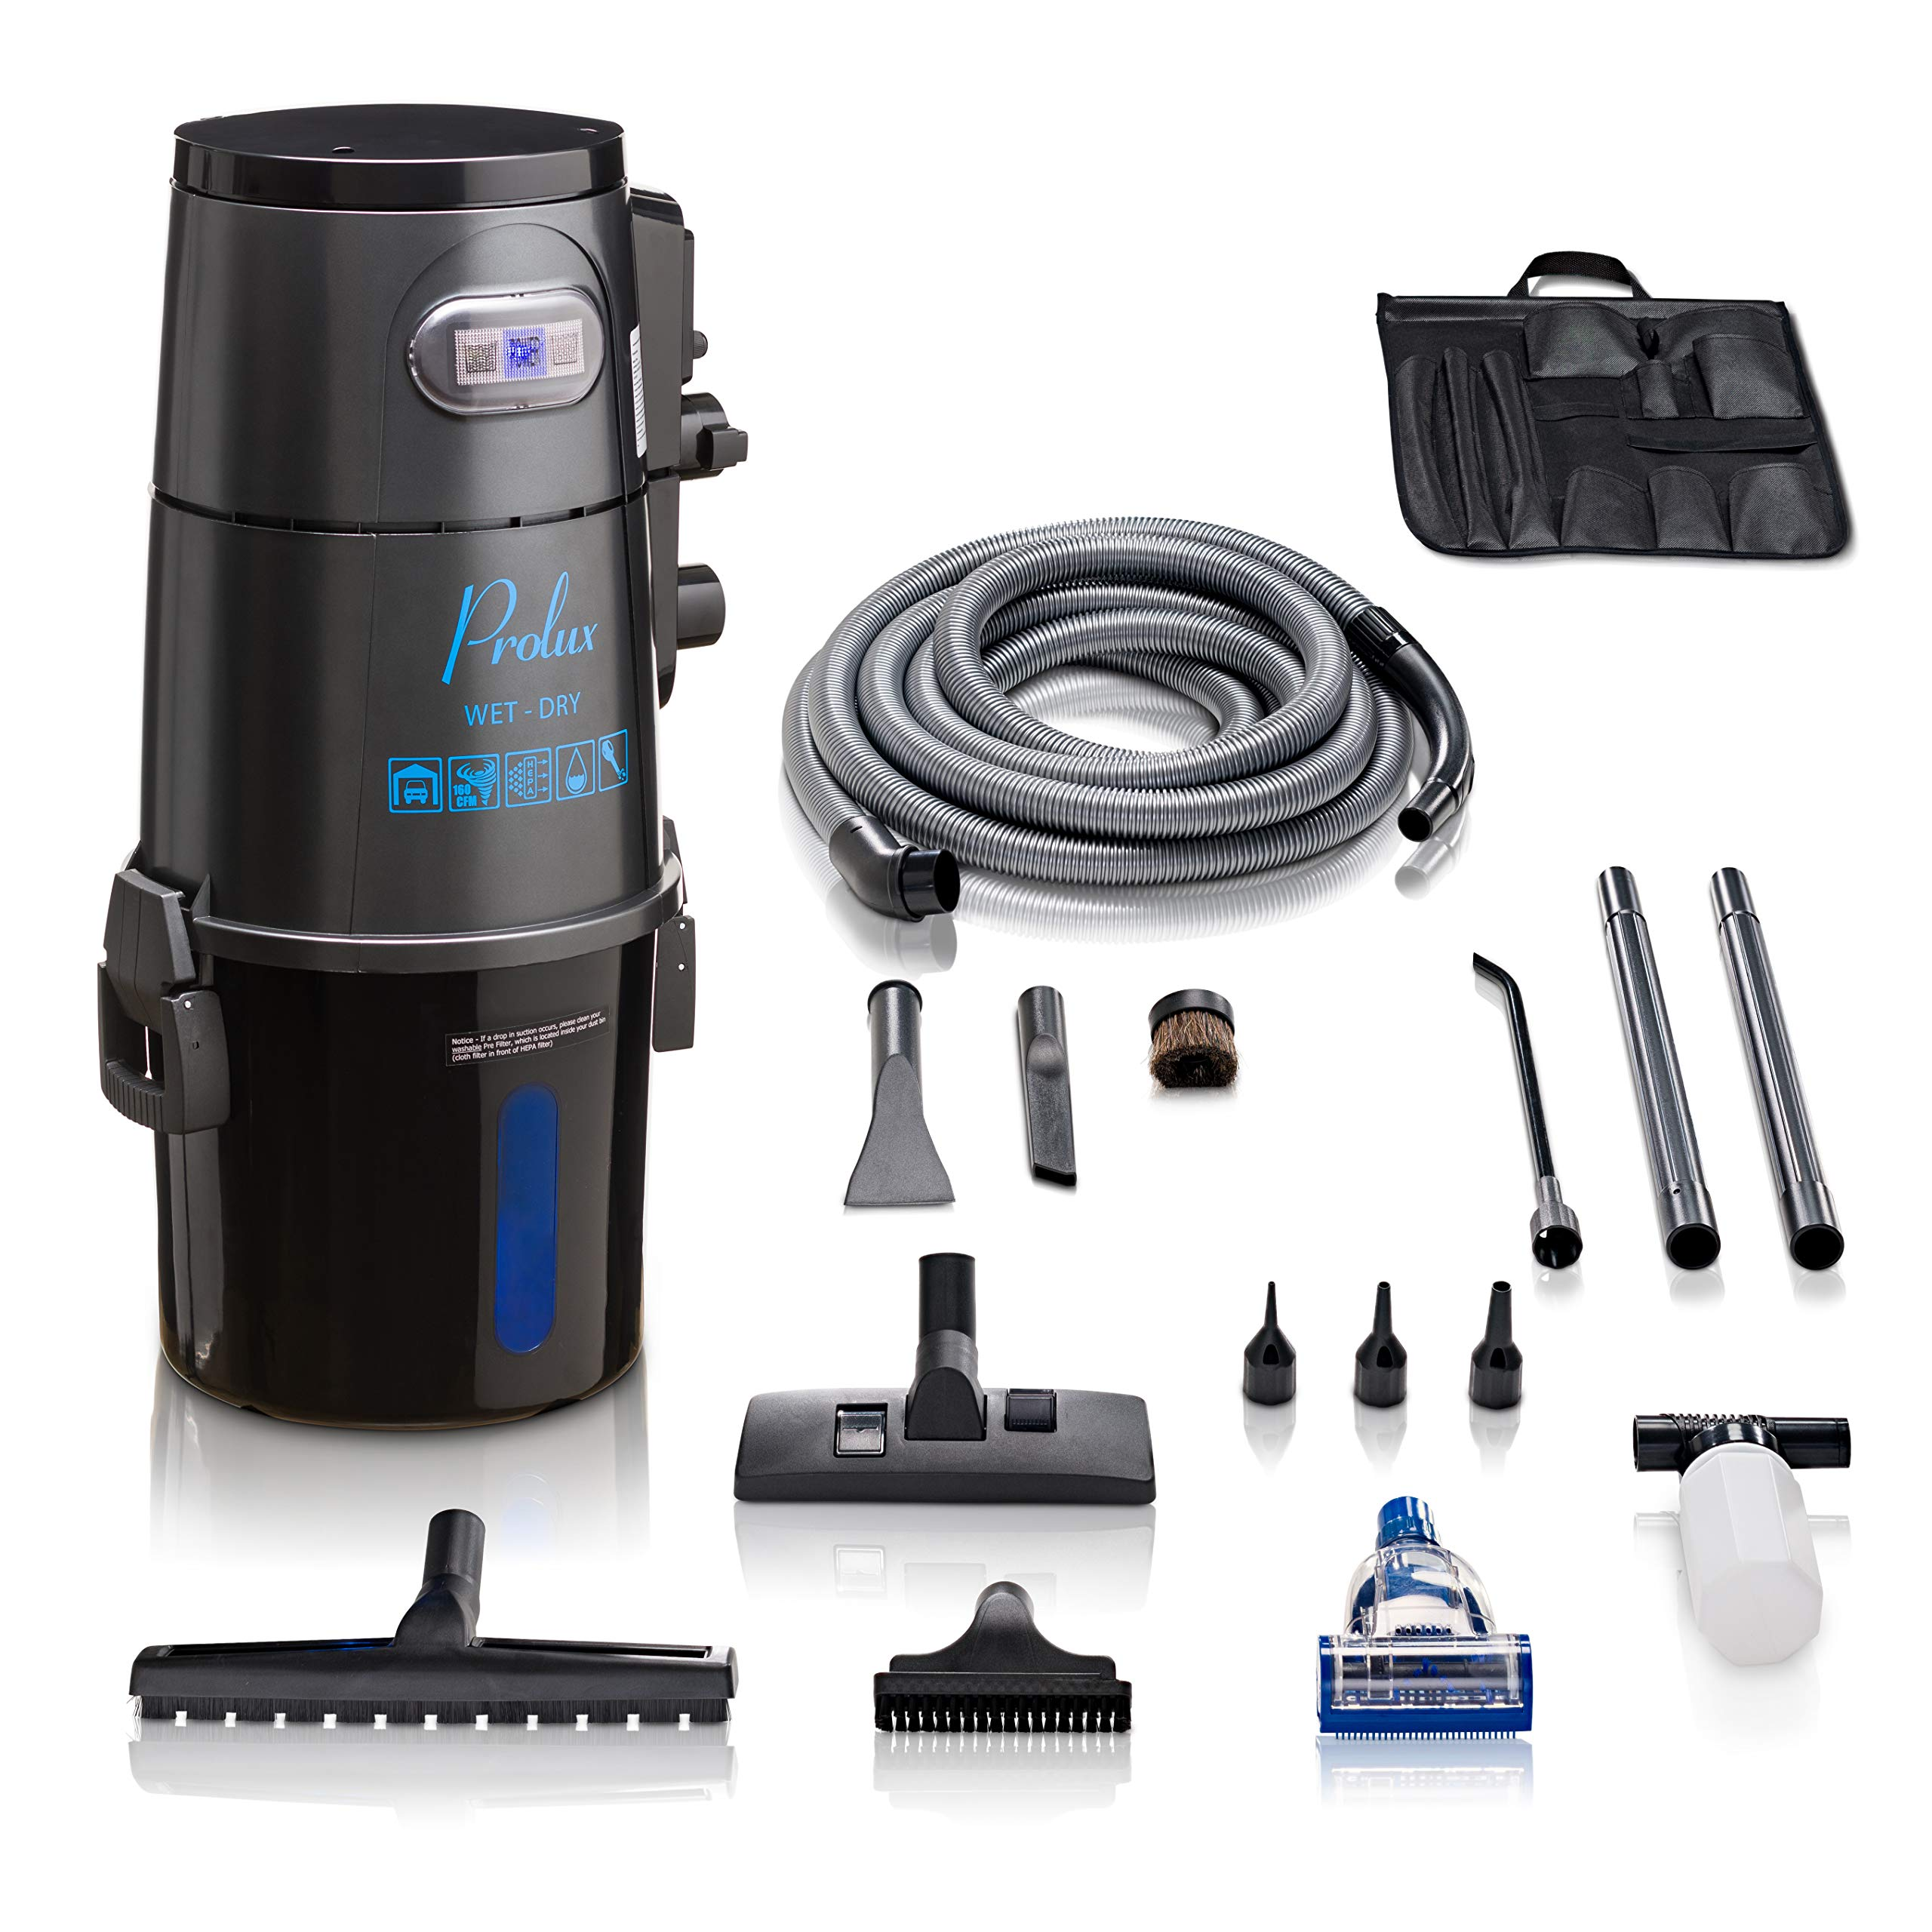 Prolux Professional Shop Grey Wall Mounted Garage Vac Wet Dry Pick Up by Prolux